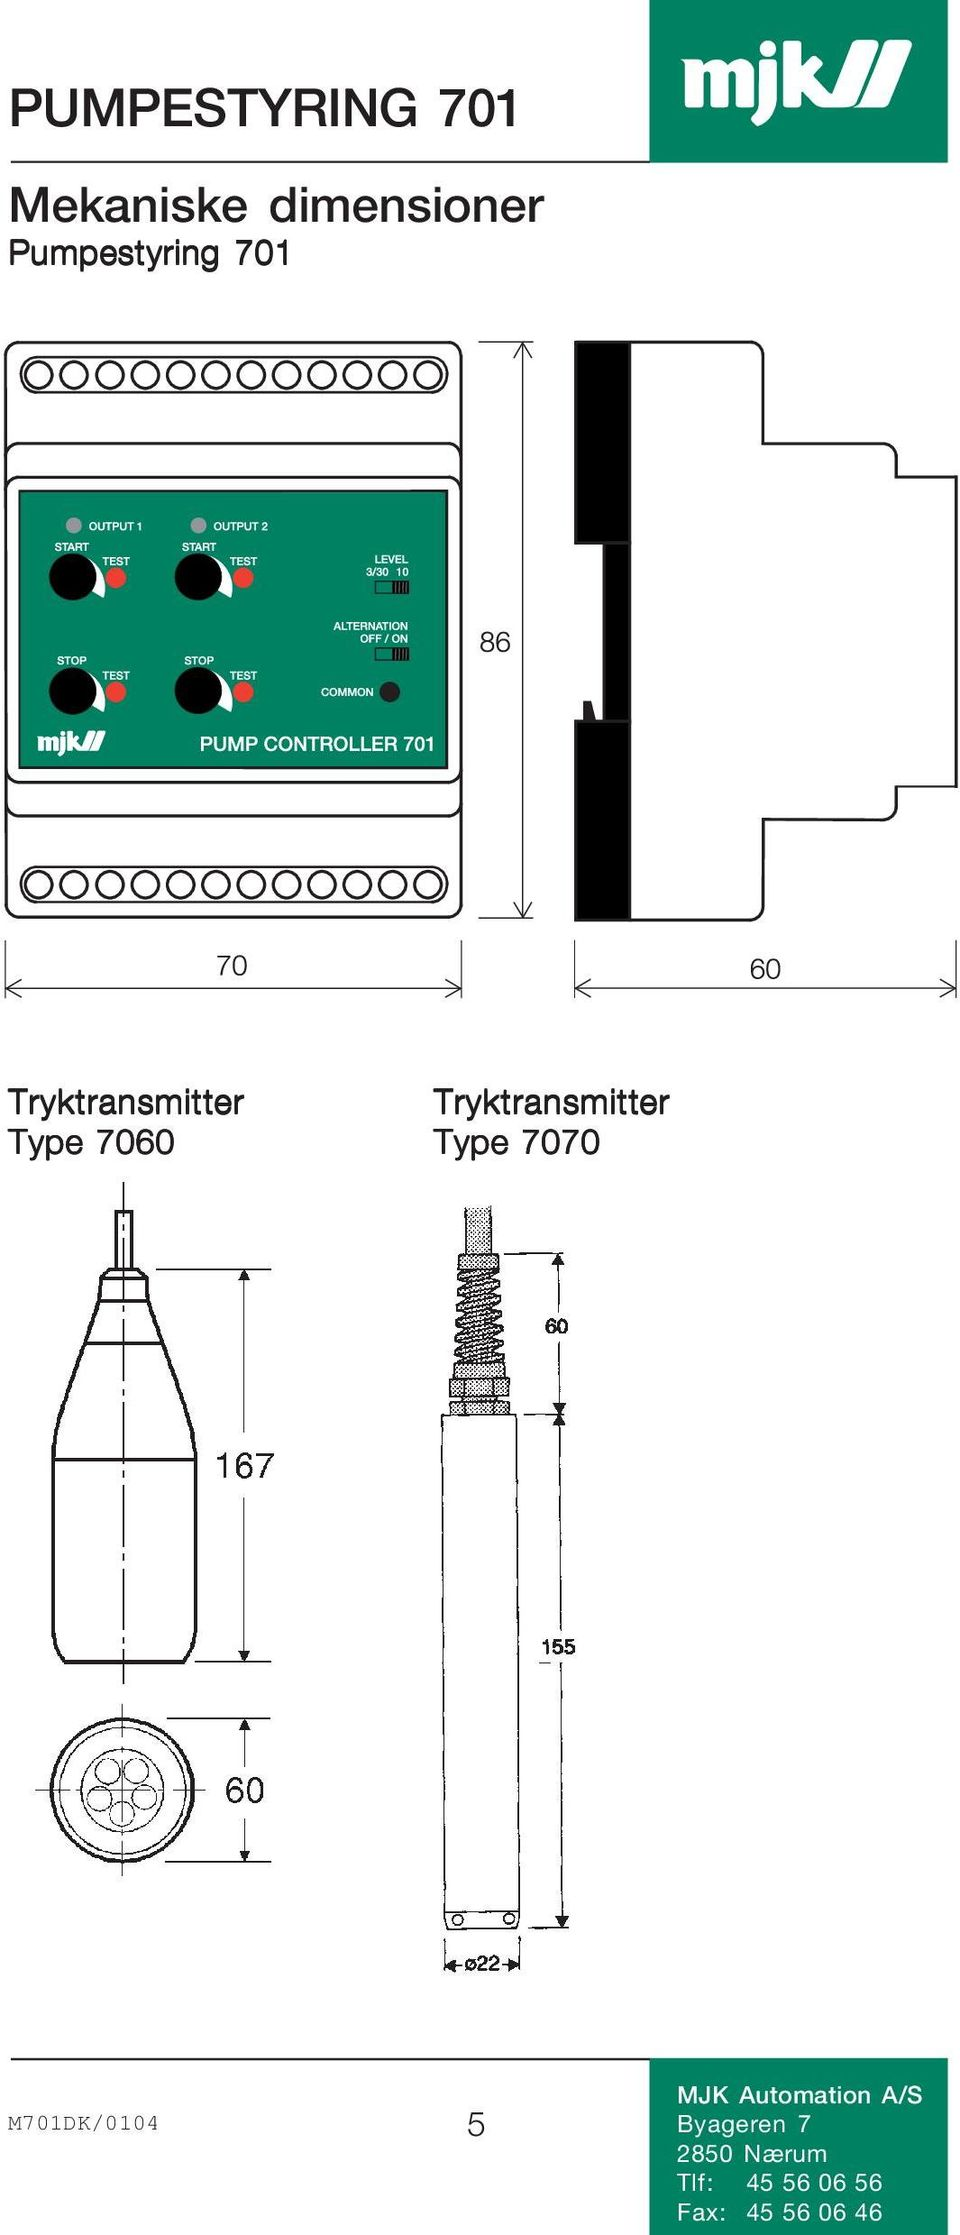 Tryktransmitter